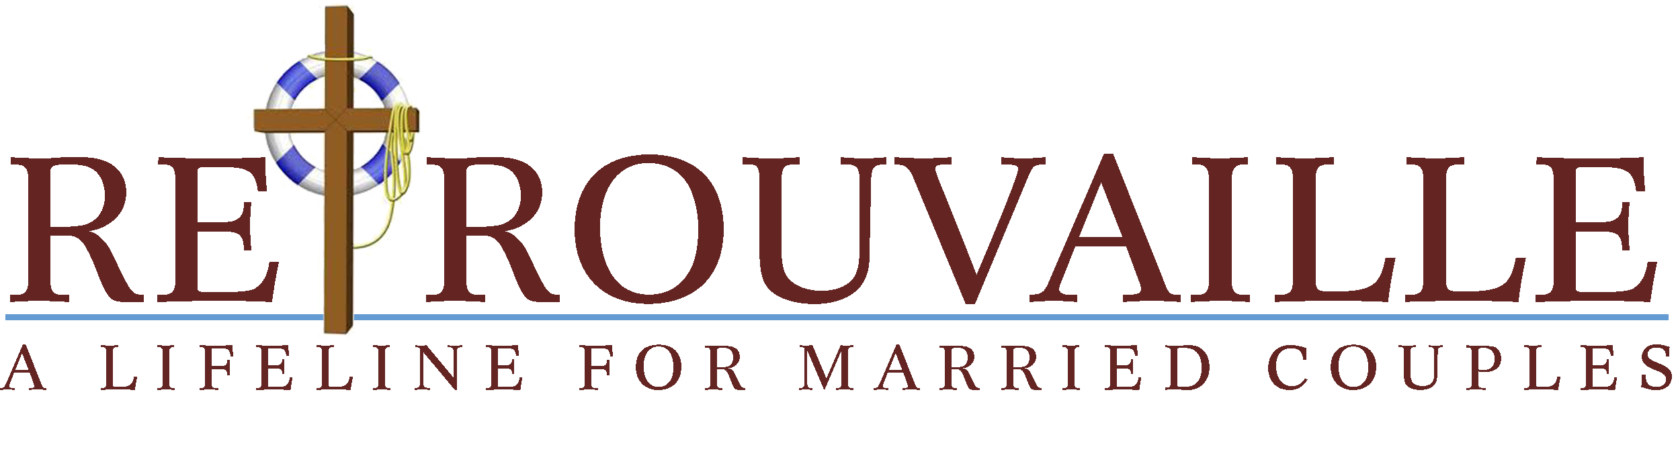 REROUVAILLE logo